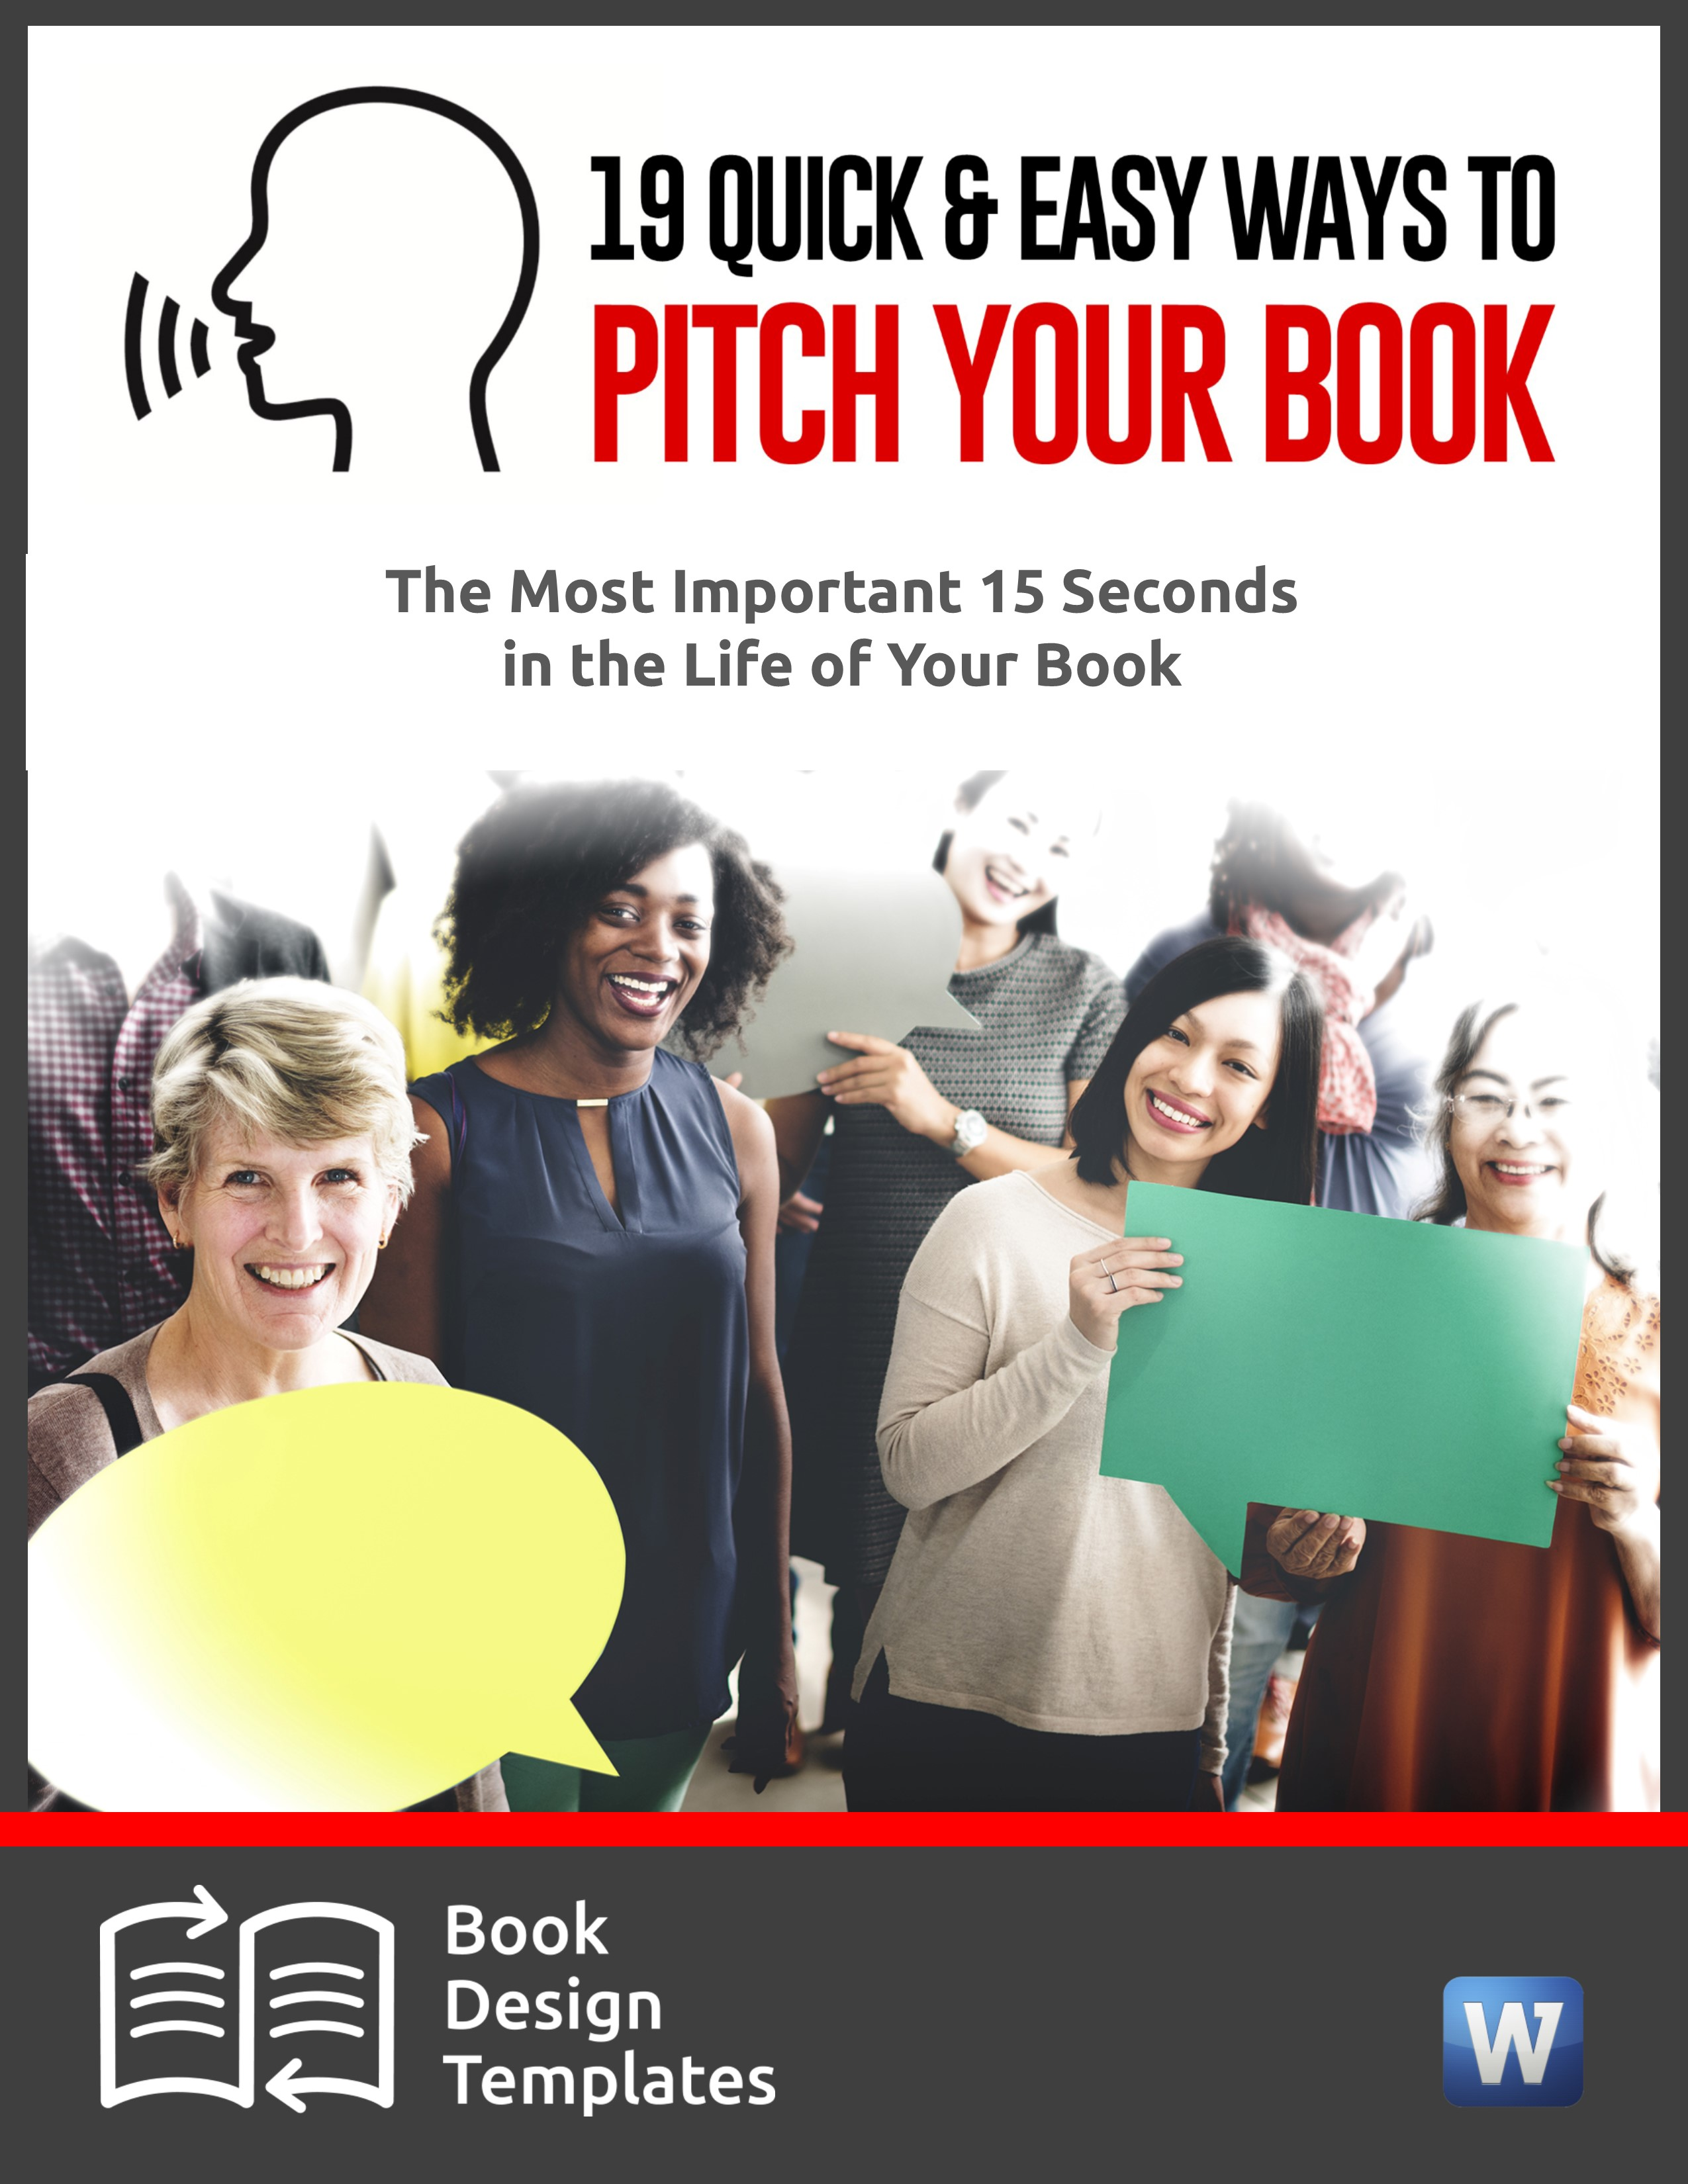 19 Quick & Easy Ways To Pitch Your Book